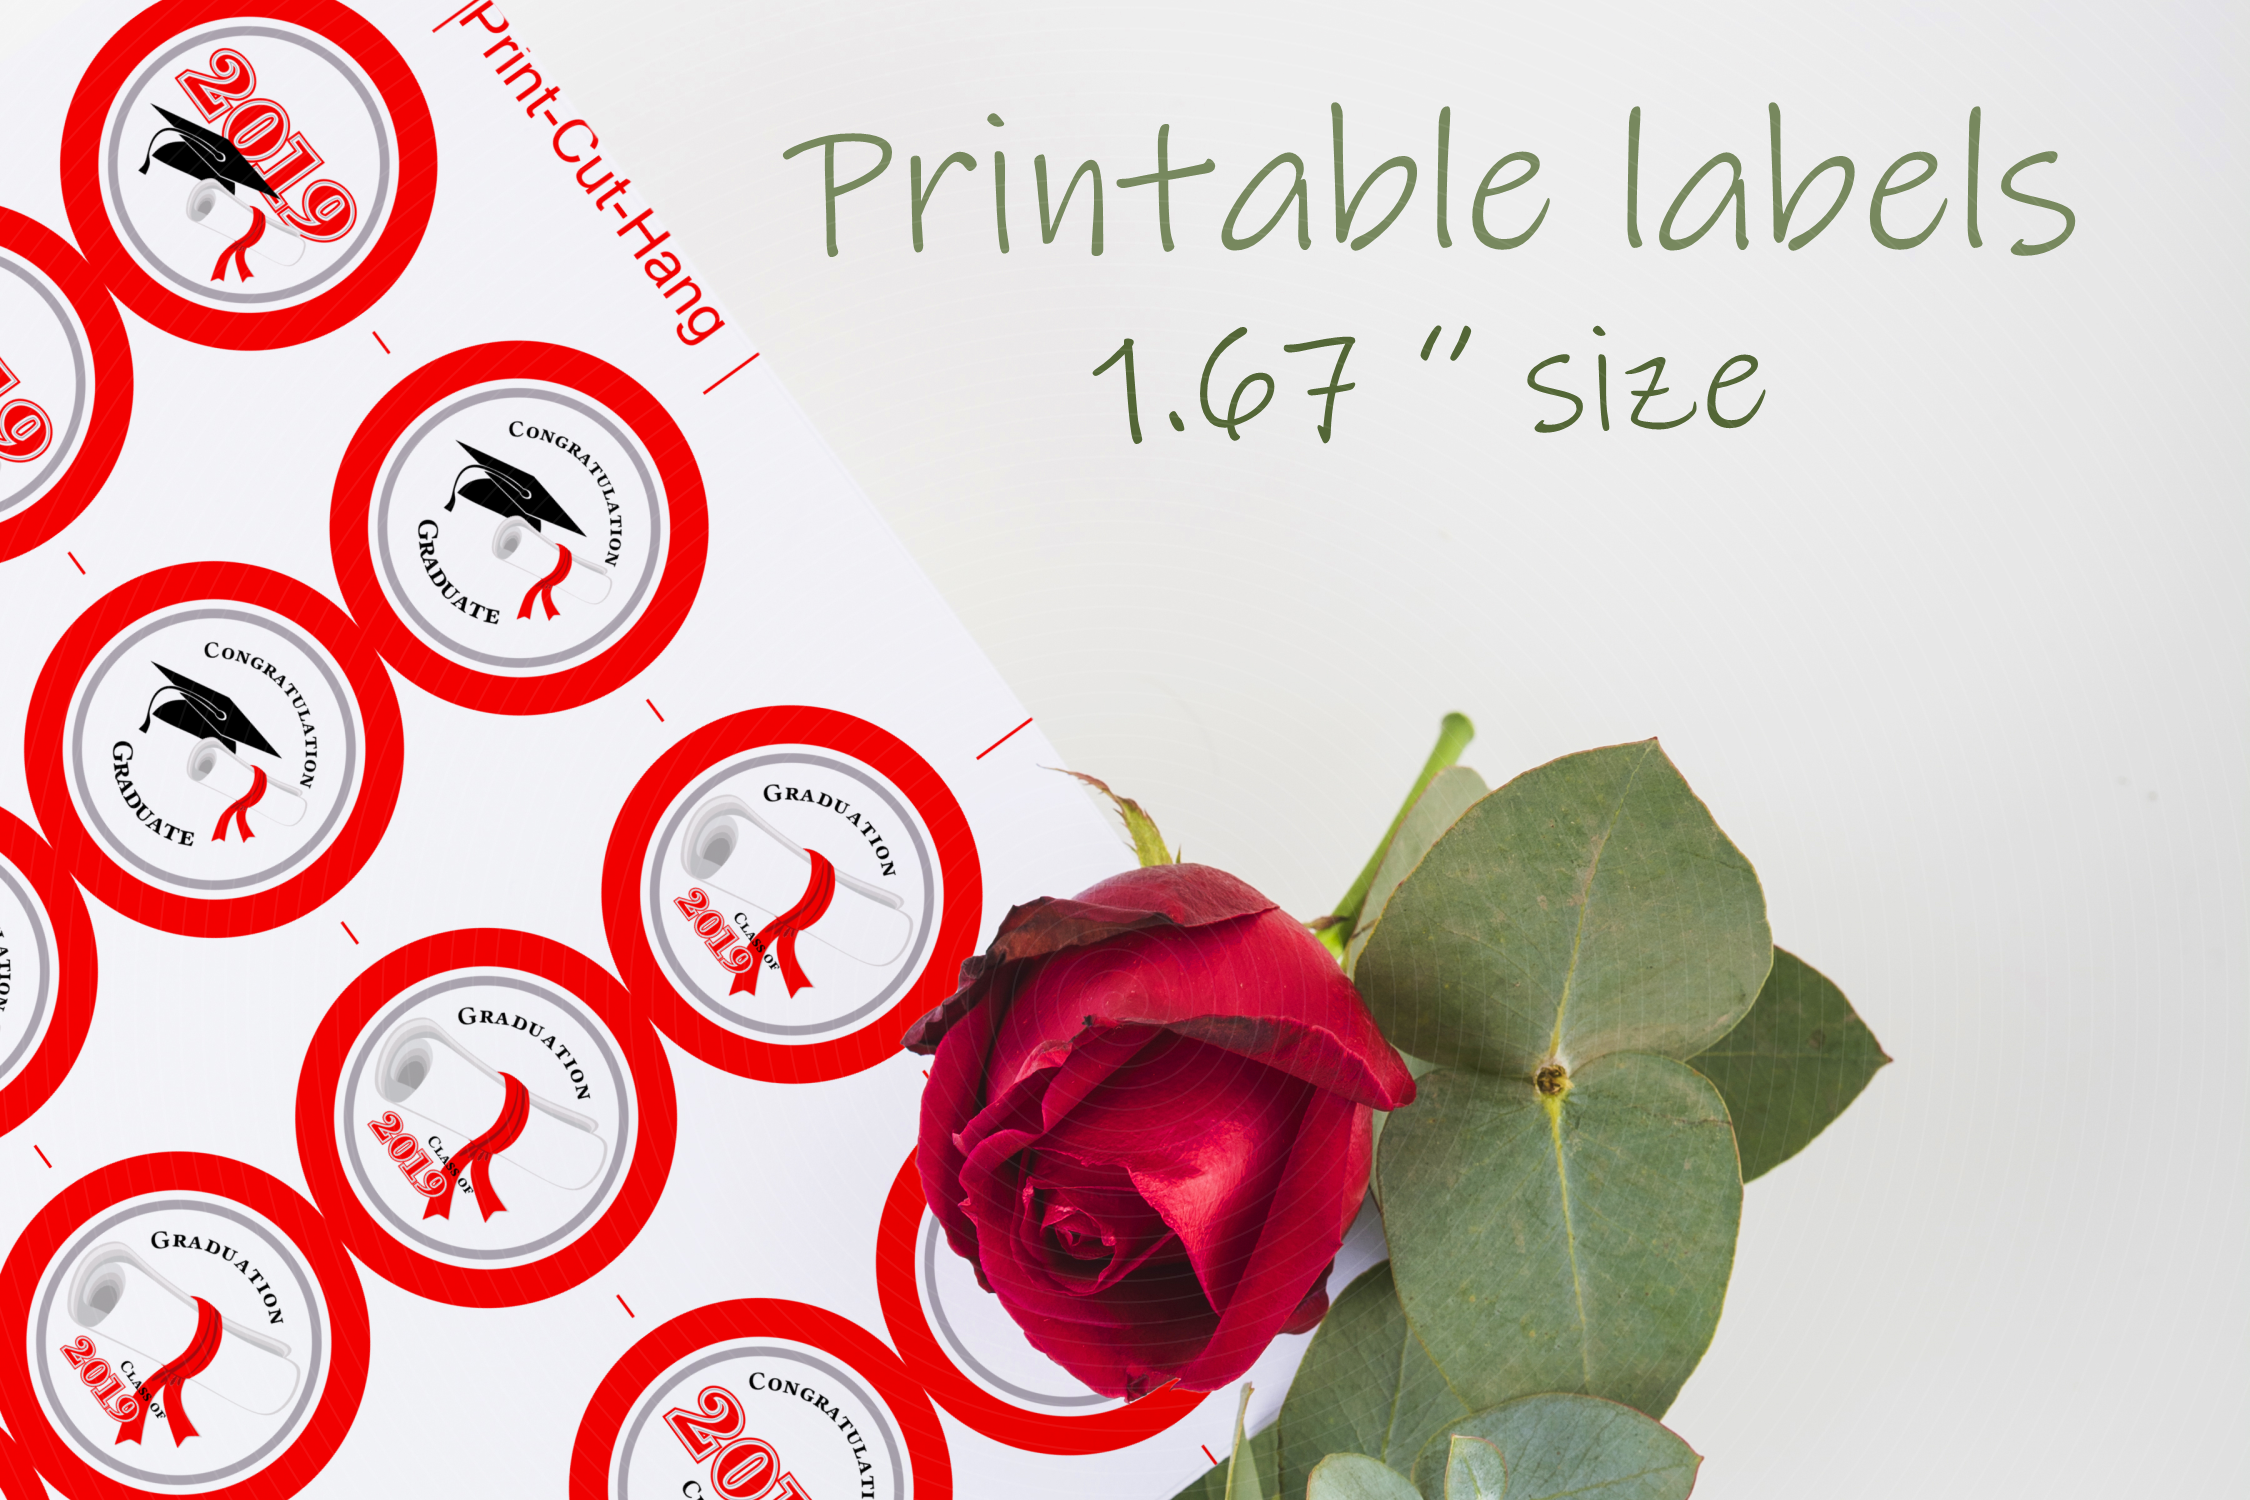 Red Printable Stickers Graduation 2019 - size 1.67 inches example image 1